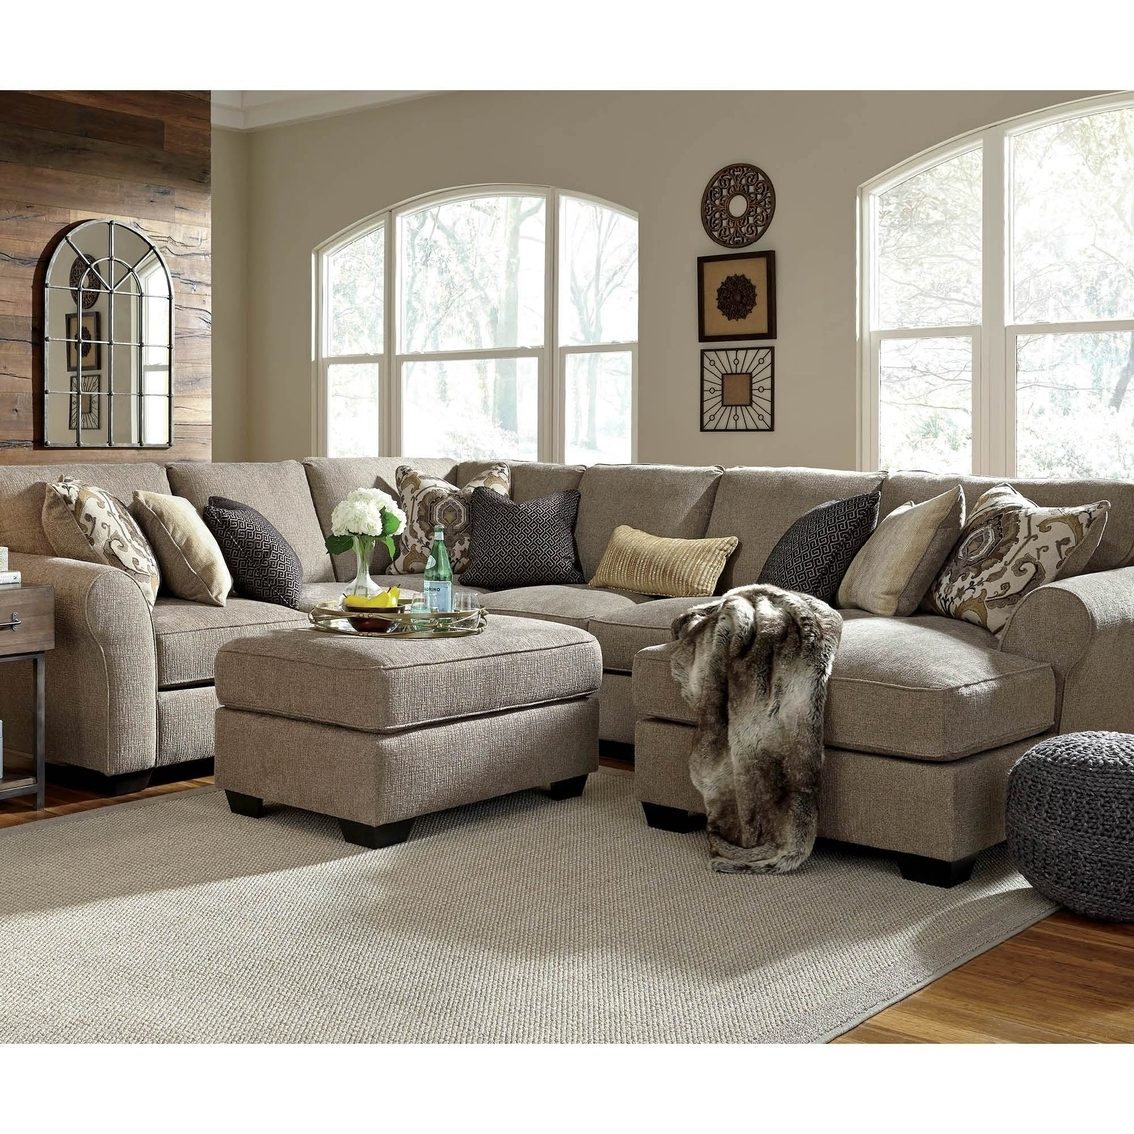 Laf Sofa Raf Loveseat | Baci Living Room Within Turdur 2 Piece Sectionals With Raf Loveseat (Image 14 of 25)